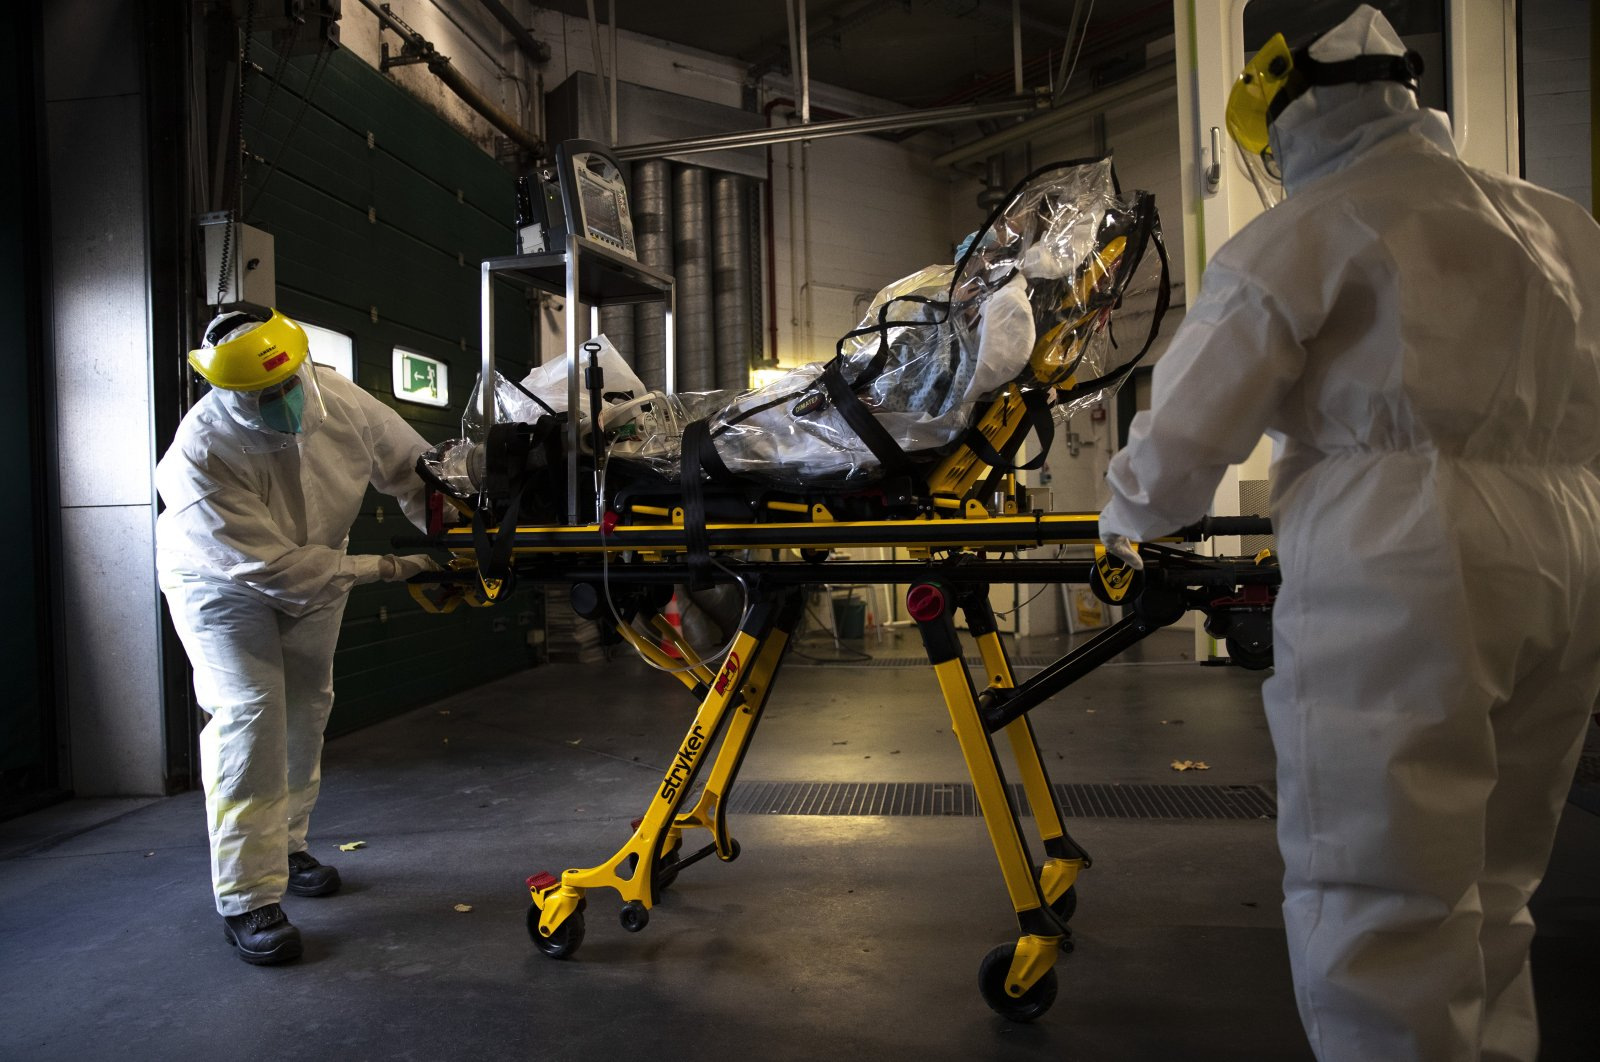 Medical staff transfer a COVID-19 patient from the CHR Citadelle hospital in Liege, Belgium, Oct. 21, 2020. (AP Photo)